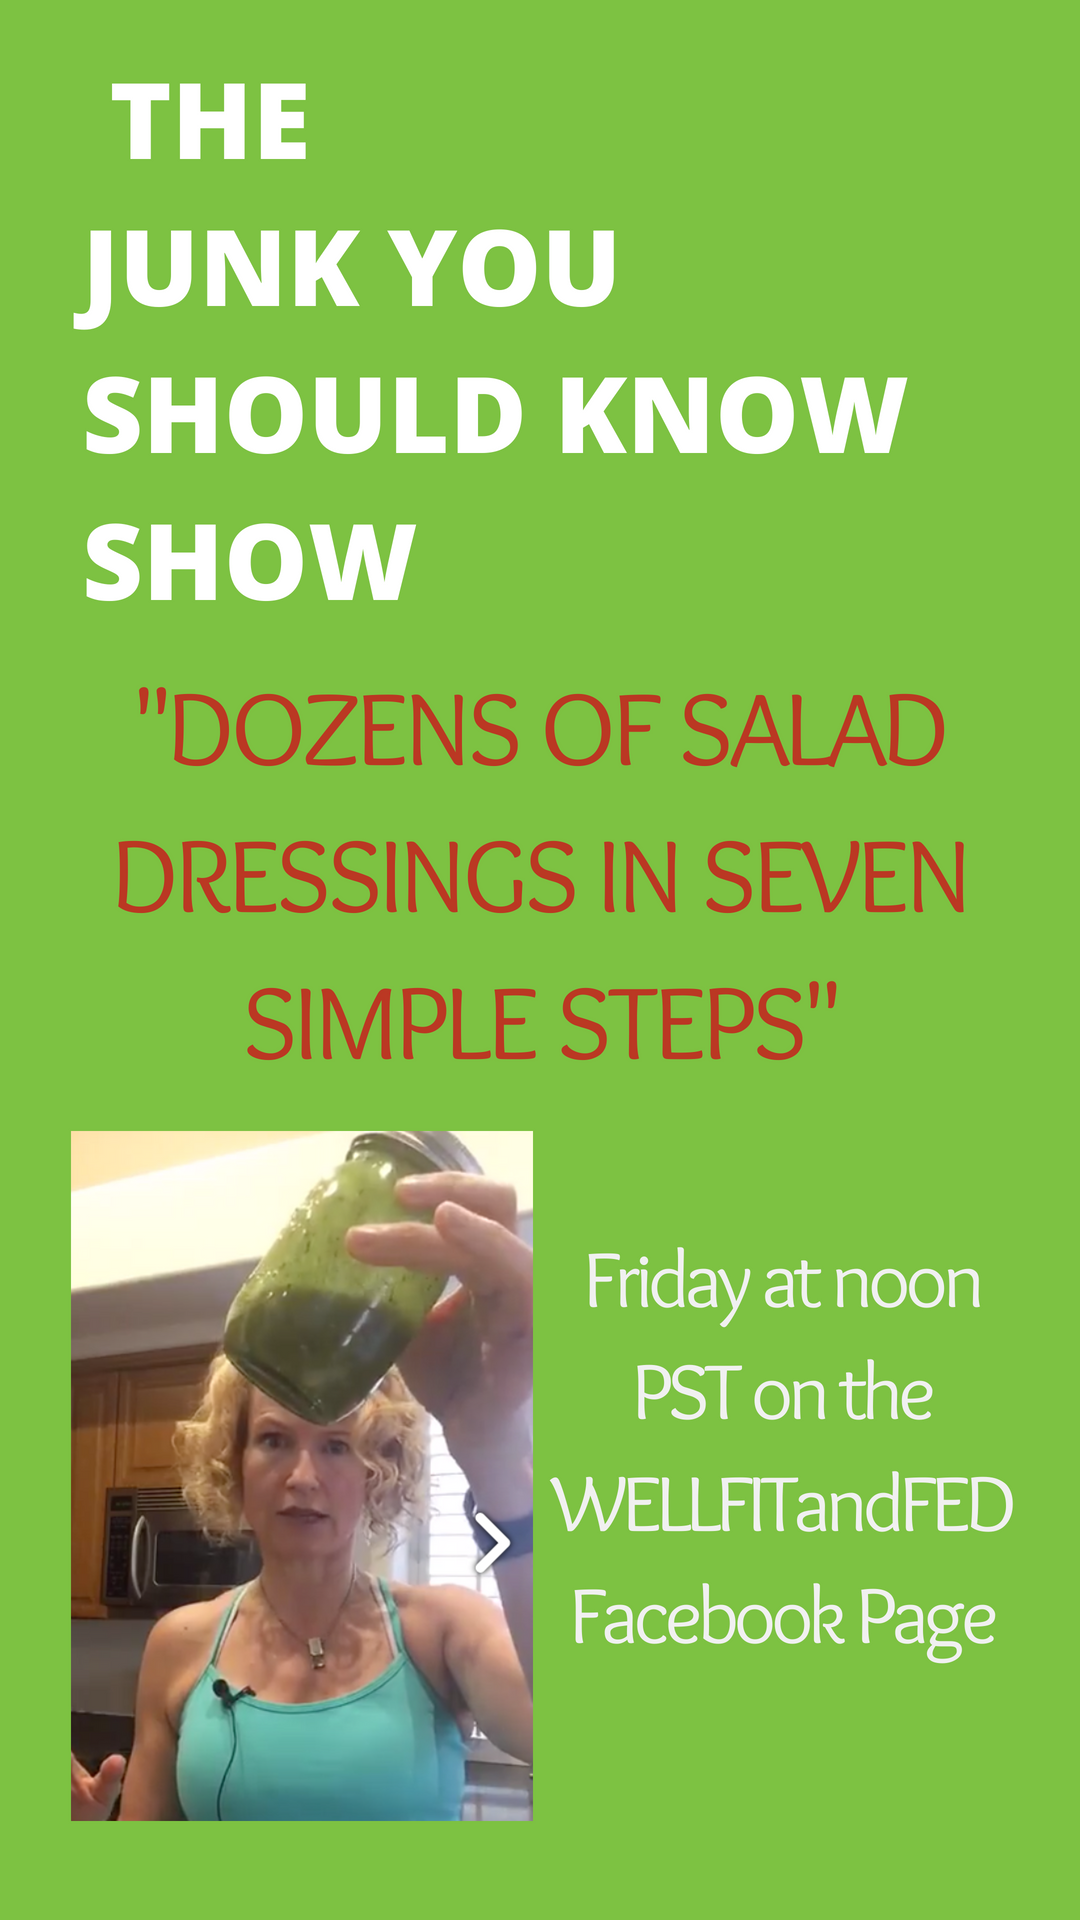 Dozens of salad dressings